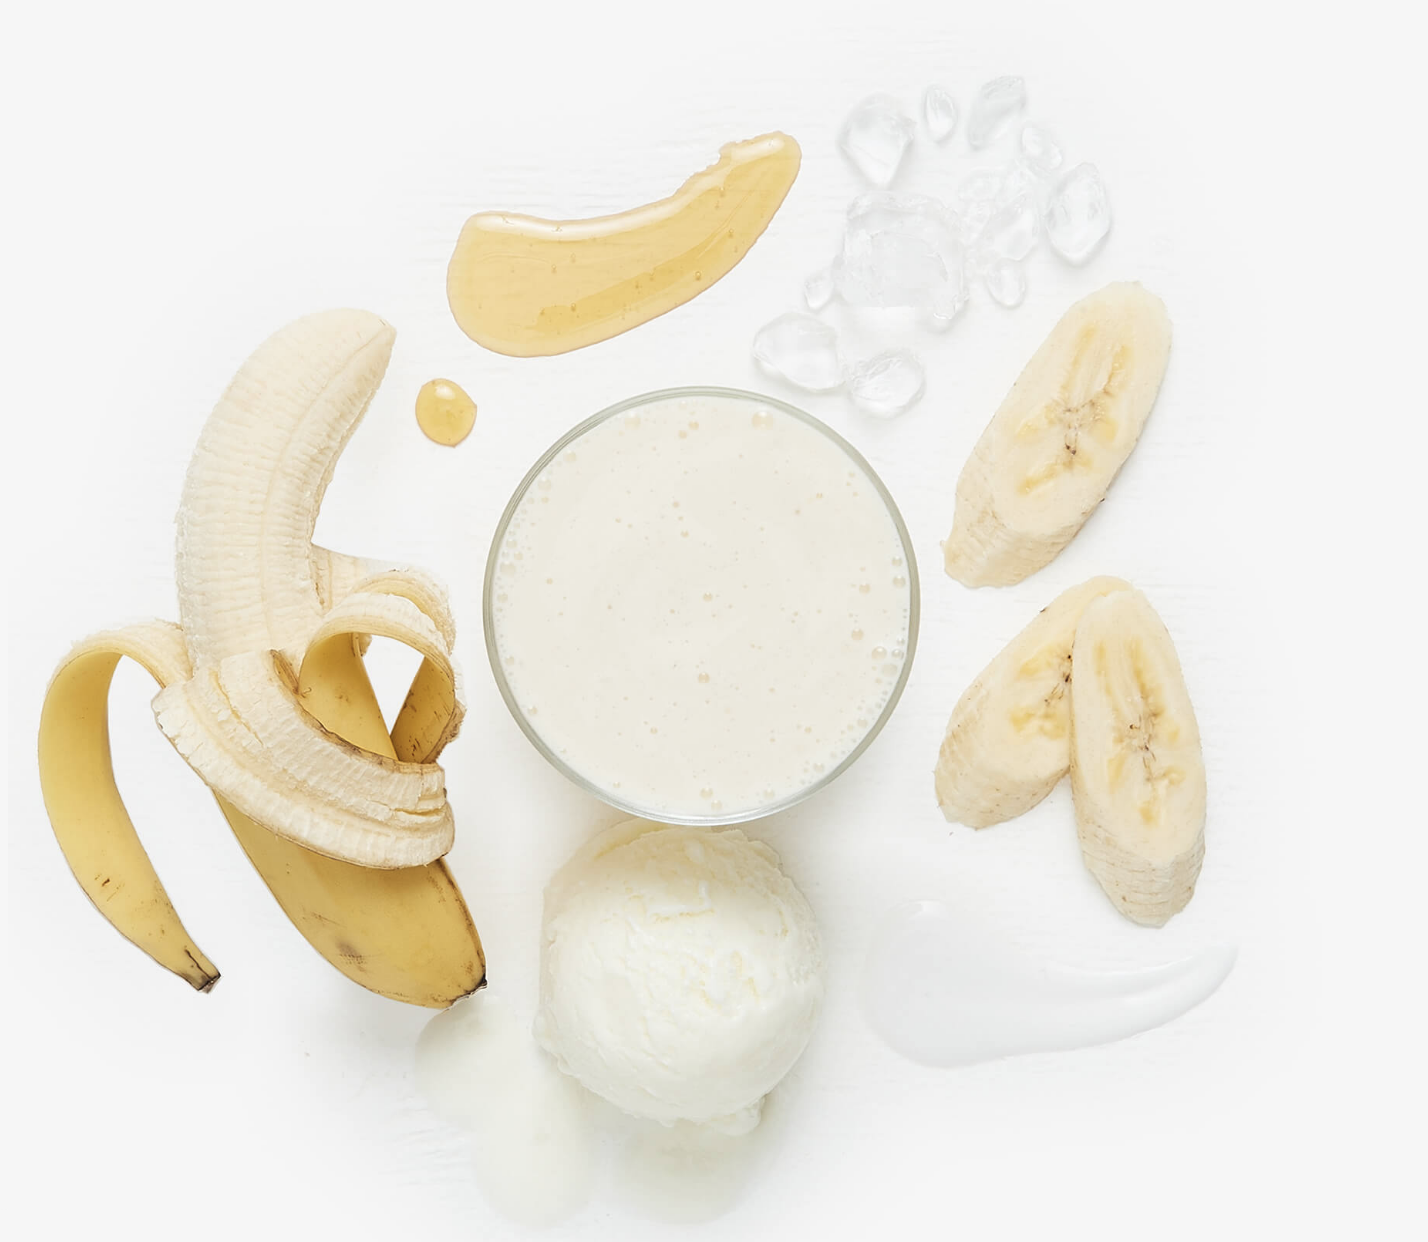 #2 Banana Buzz - Our next favourite puts your banana smoothie to shame! Let Boost do the hard work and create the ultimate mix of Low Fat Milk, Banana, Honey, Vanilla Yoghurt & Ice.